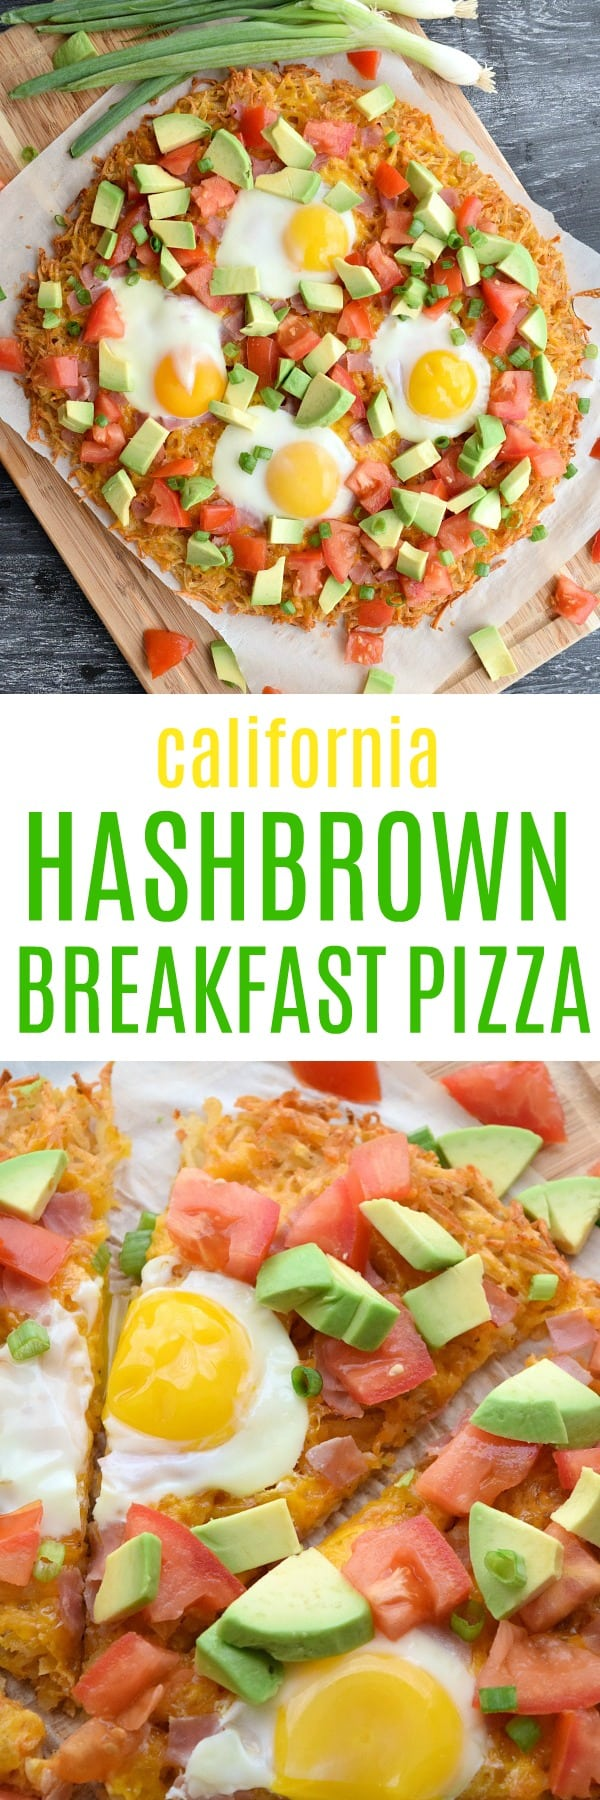 California Hashbrown Breakfast Pizza